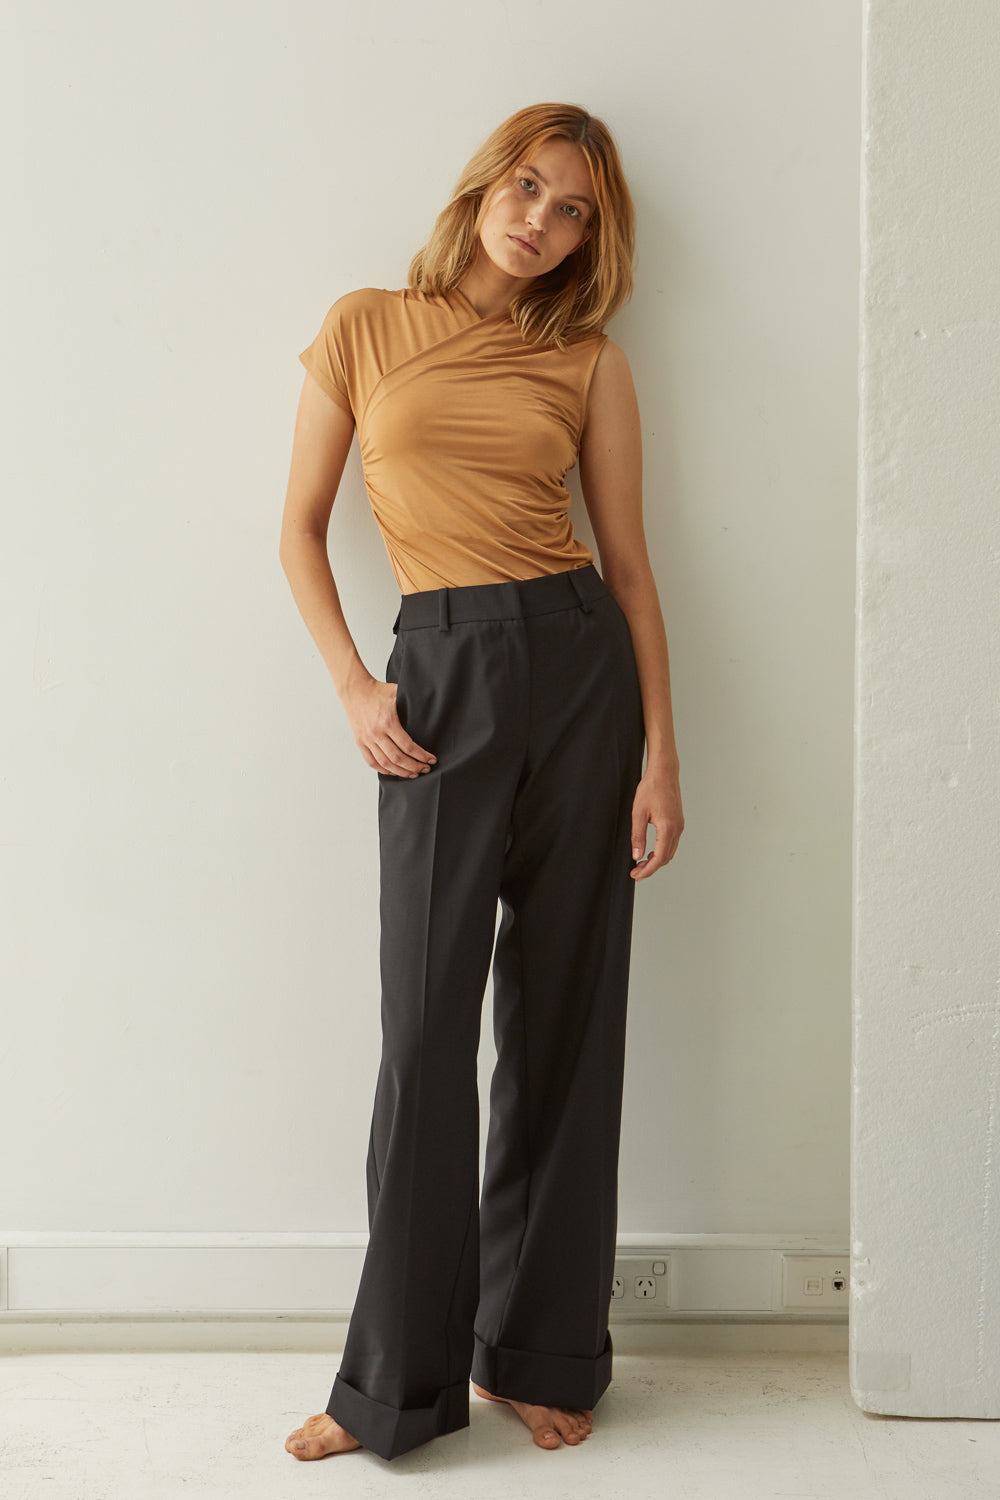 NZ Fashion Clothing Boutique gregorythelabel Gregory SS18 Mateo Pant Made in NZ